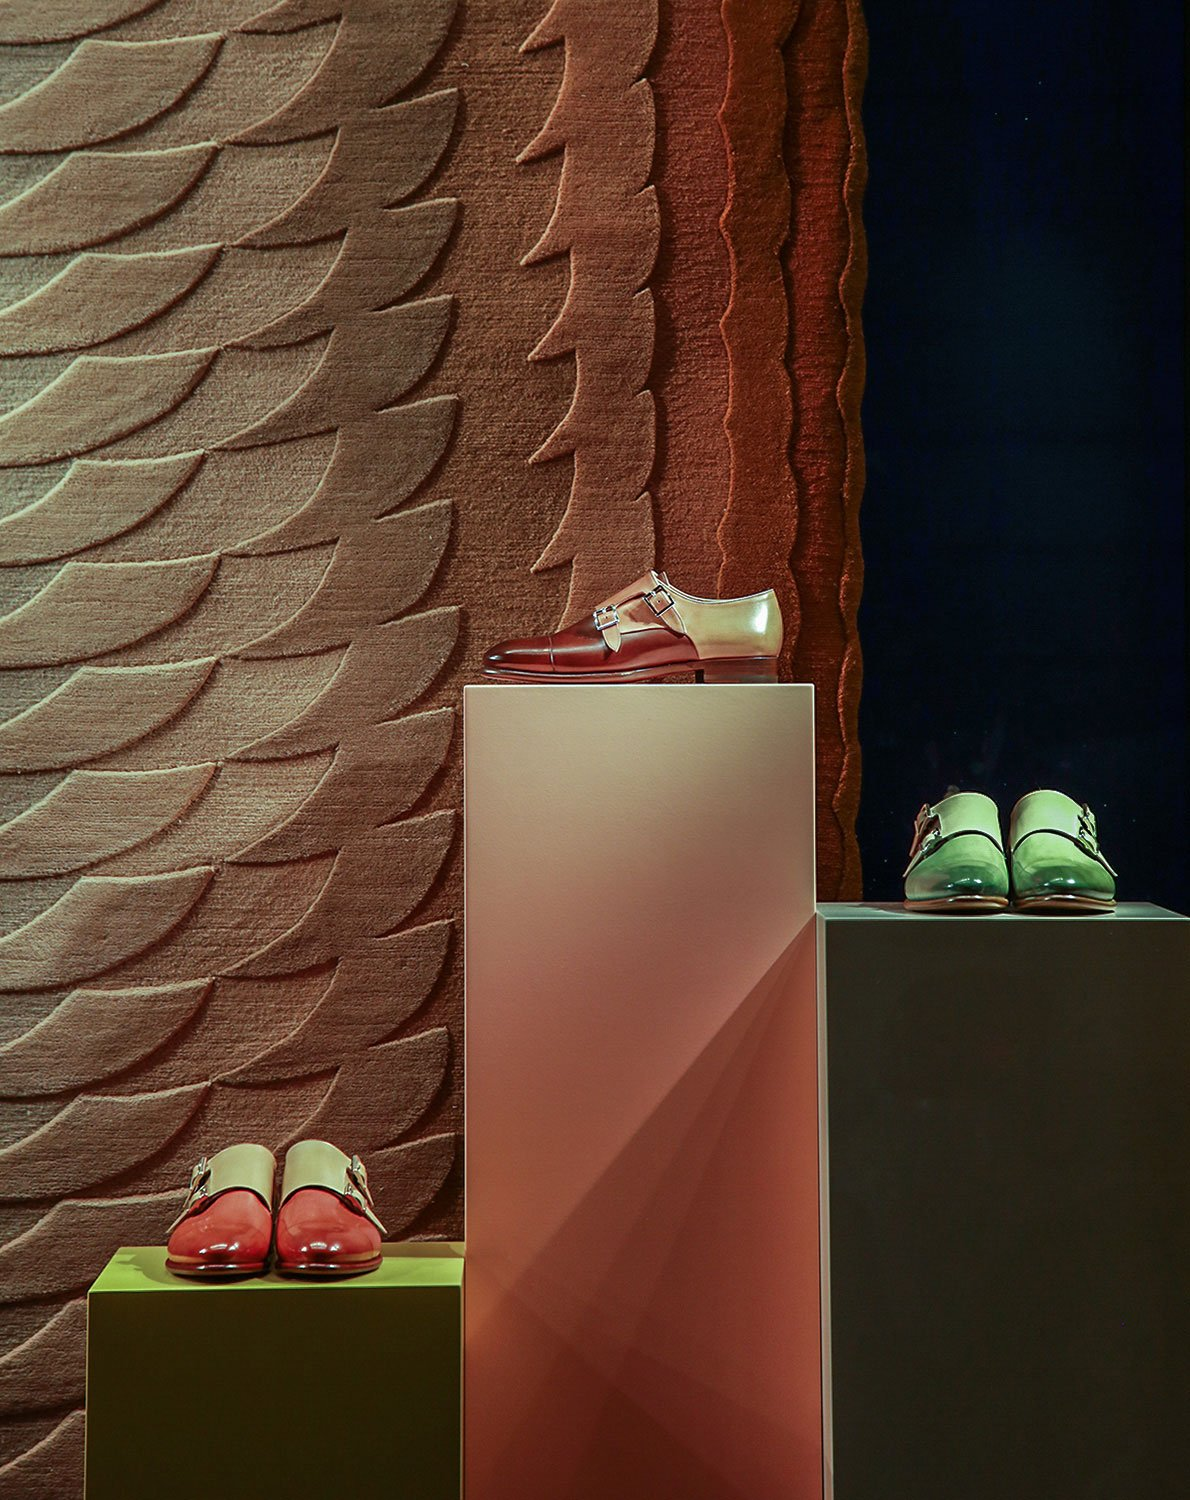 The new collection of Slinkie rugs by Patricia Urquiola for cc-tapis was featured in the window of Santoni boutique among limited-edition double monk shoes which were produced in the same color palette with the rug.